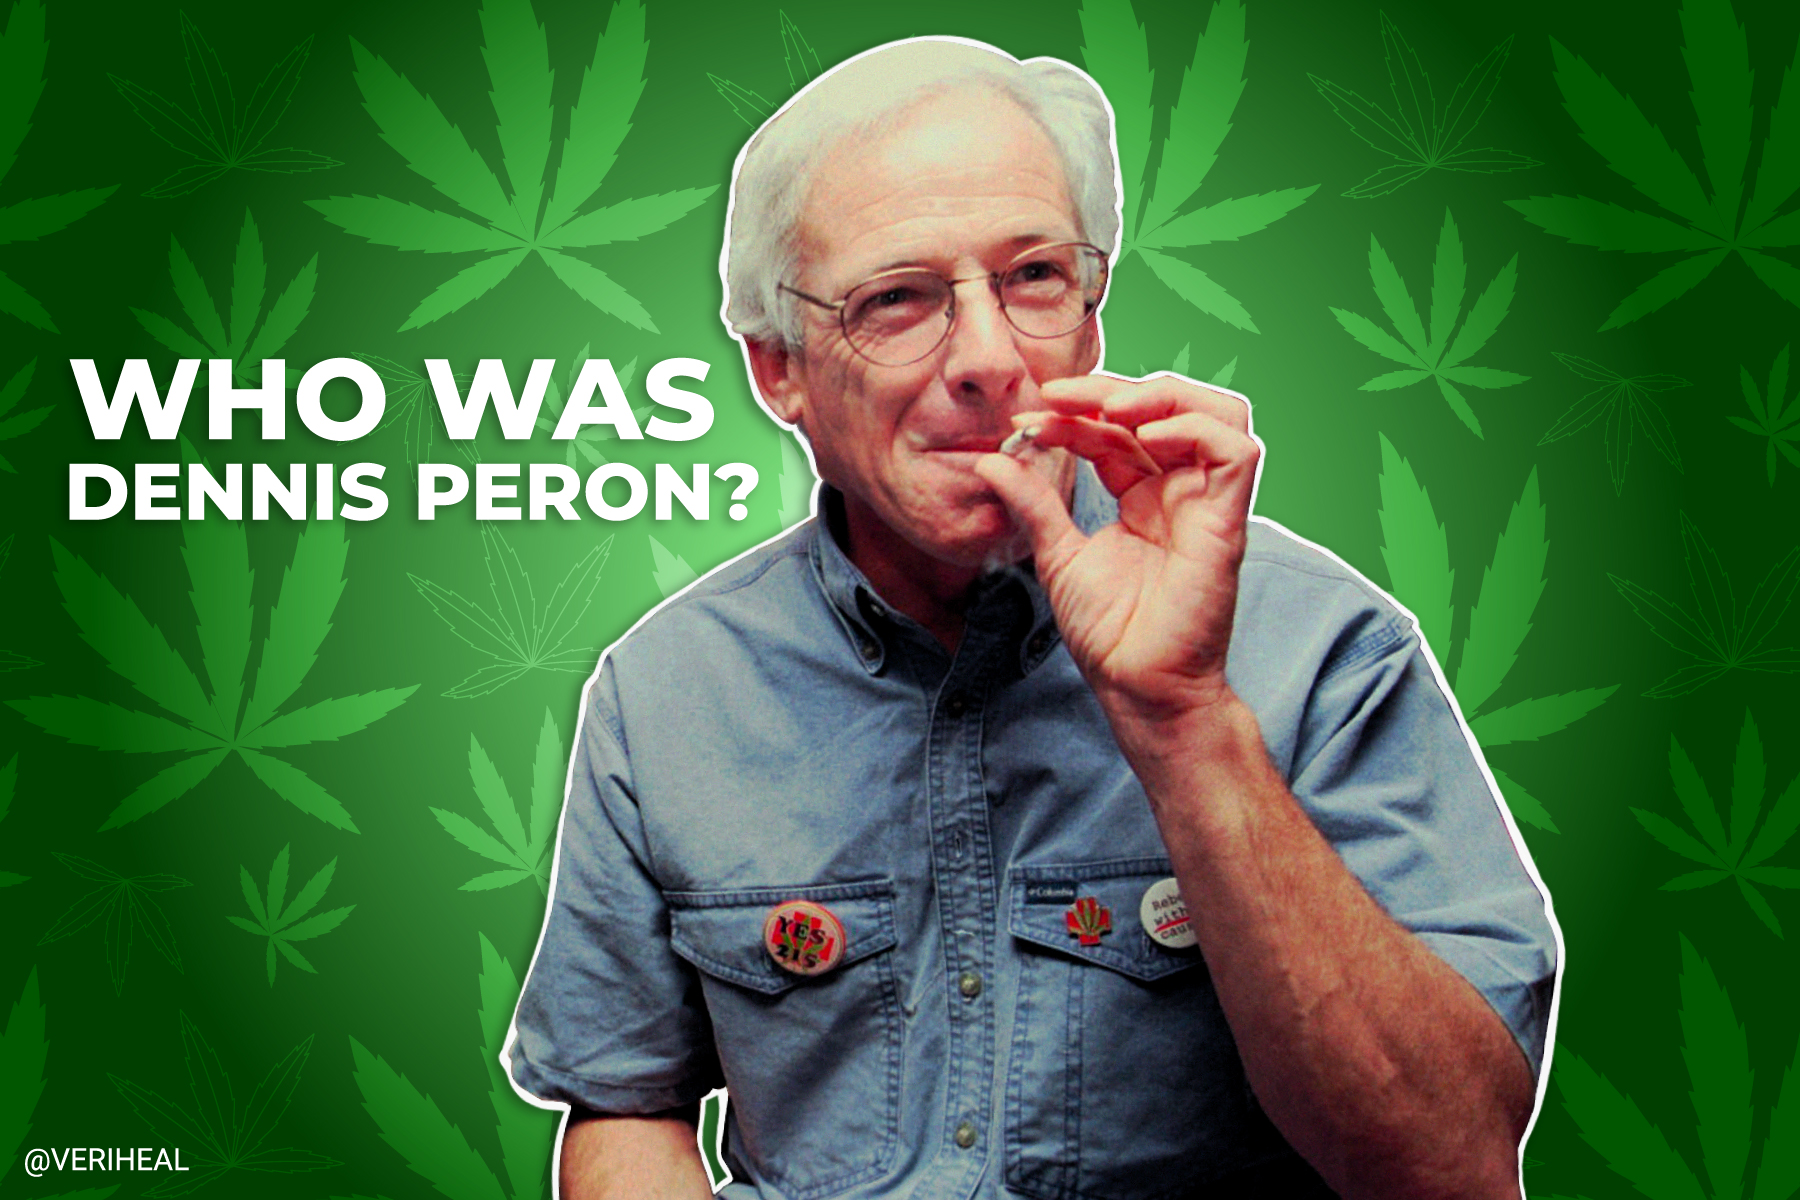 Who Was Dennis Peron and How Did He Impact Cannabis Legalization?